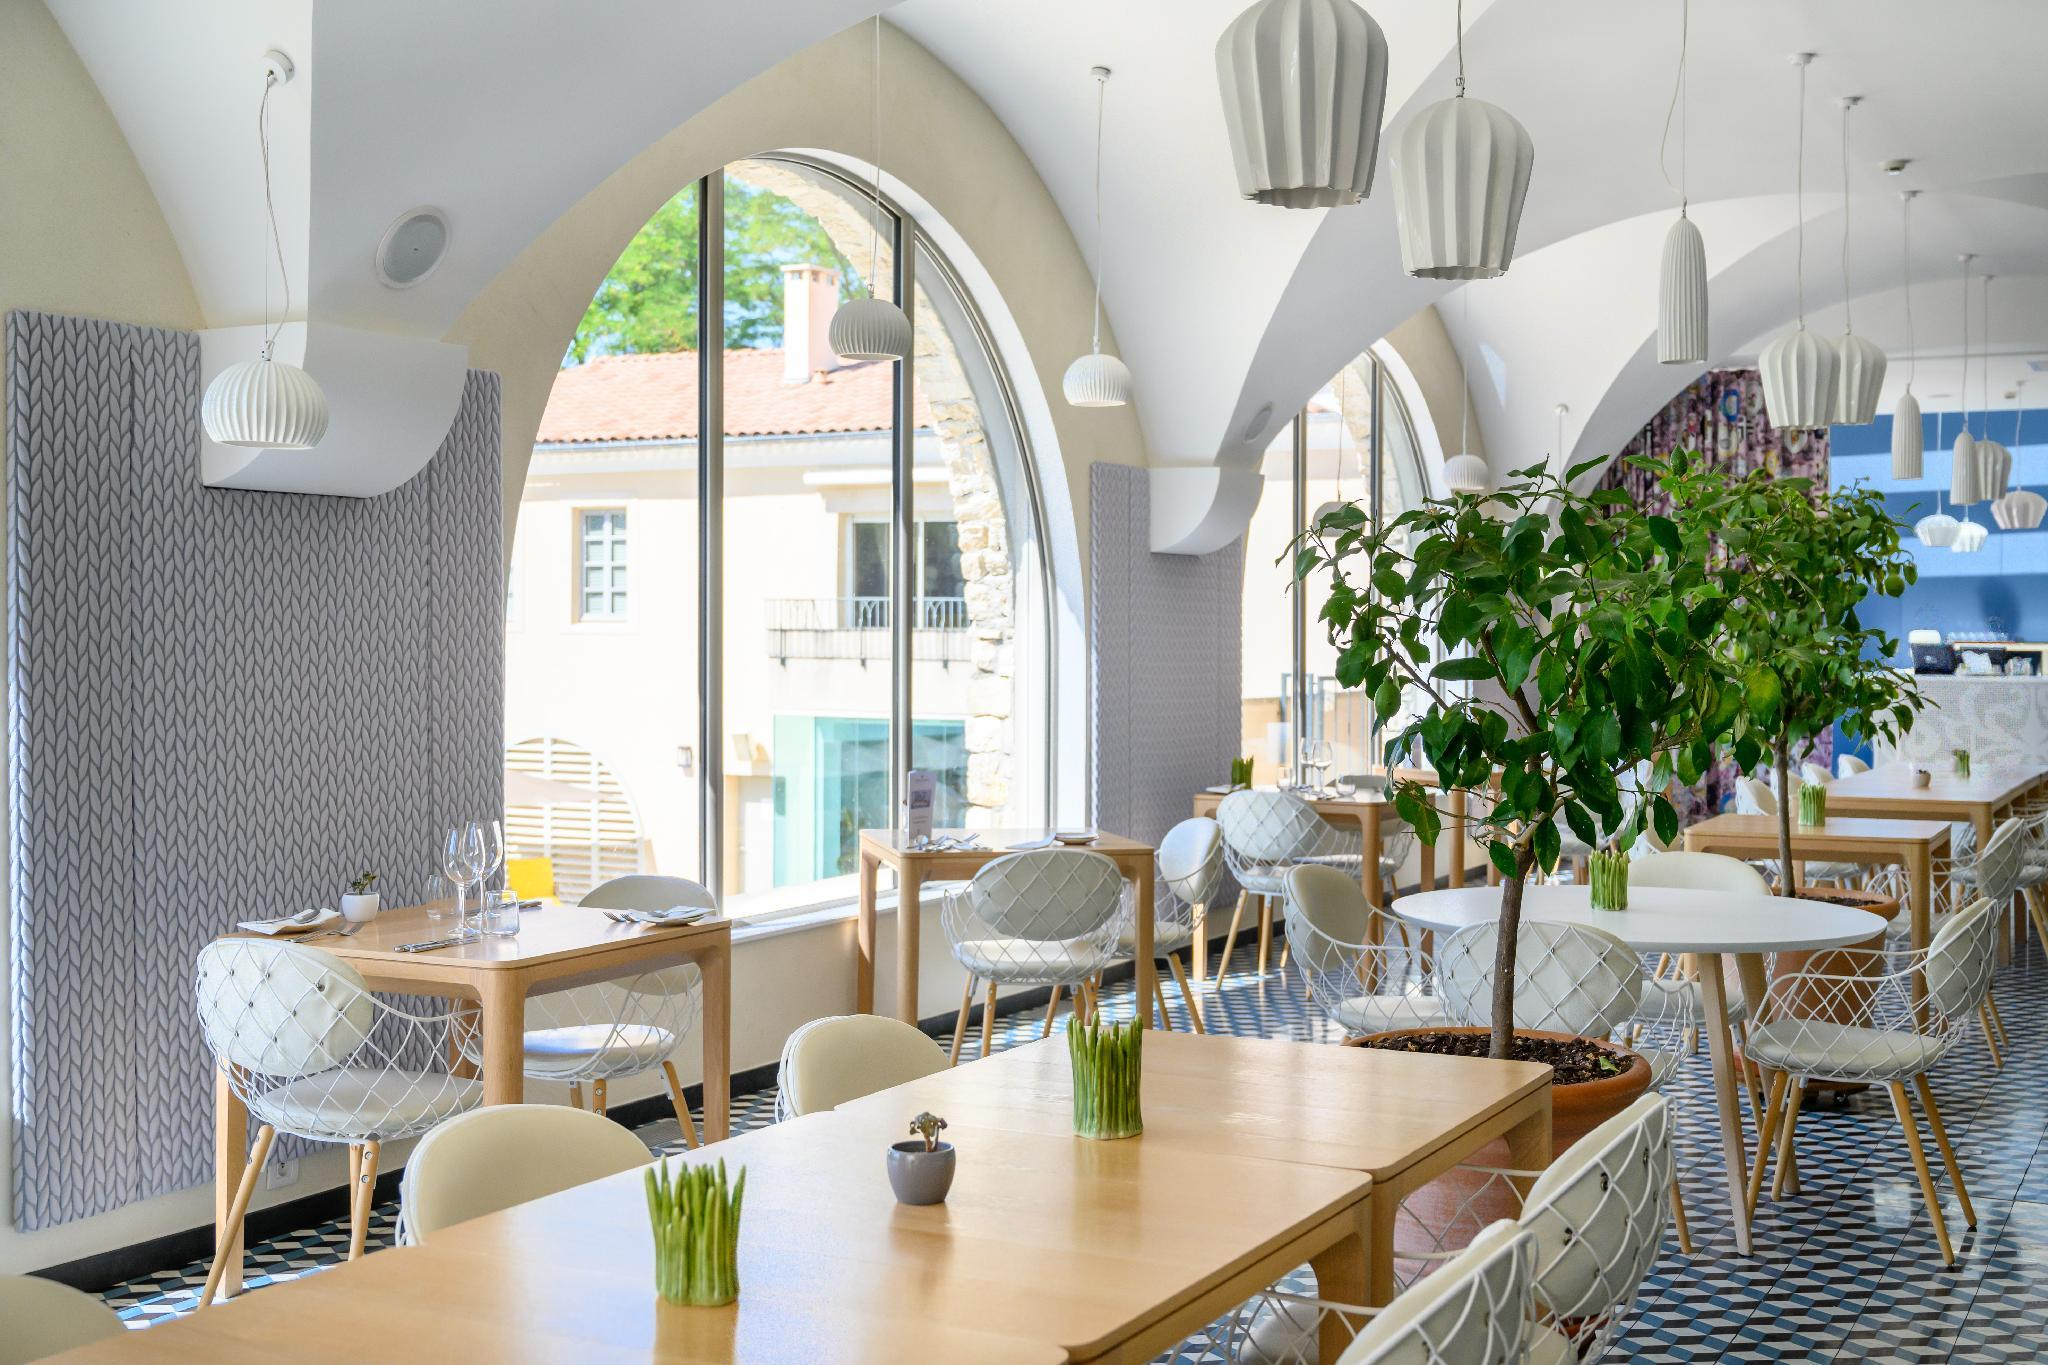 Le Couvent Des Minimes Hotel And Spa